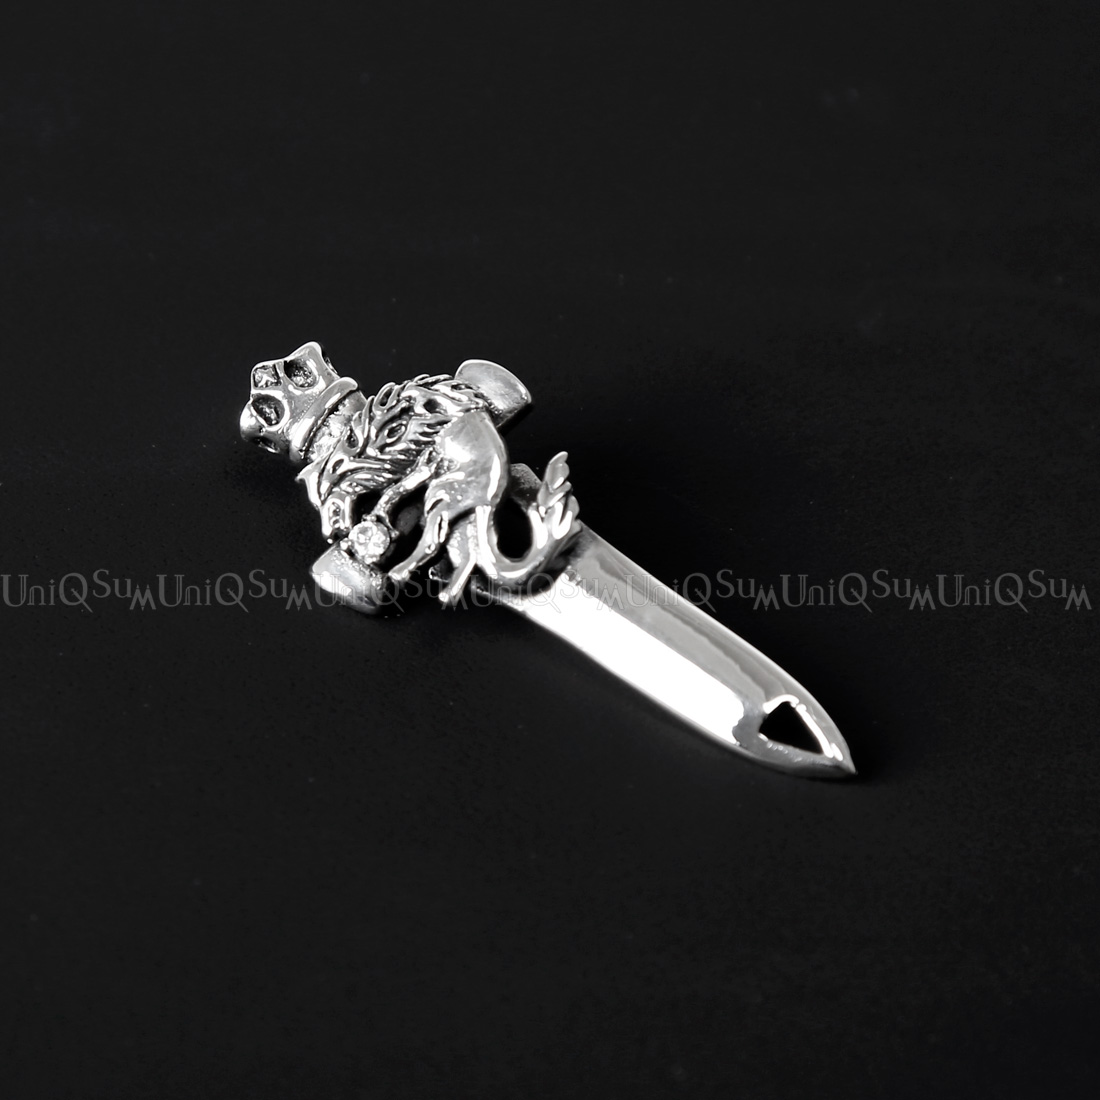 Sword wolf 925 sterling silver pendant uniqsum wolf pendant cubic zirconia wolf sword 925 sterling aloadofball Choice Image